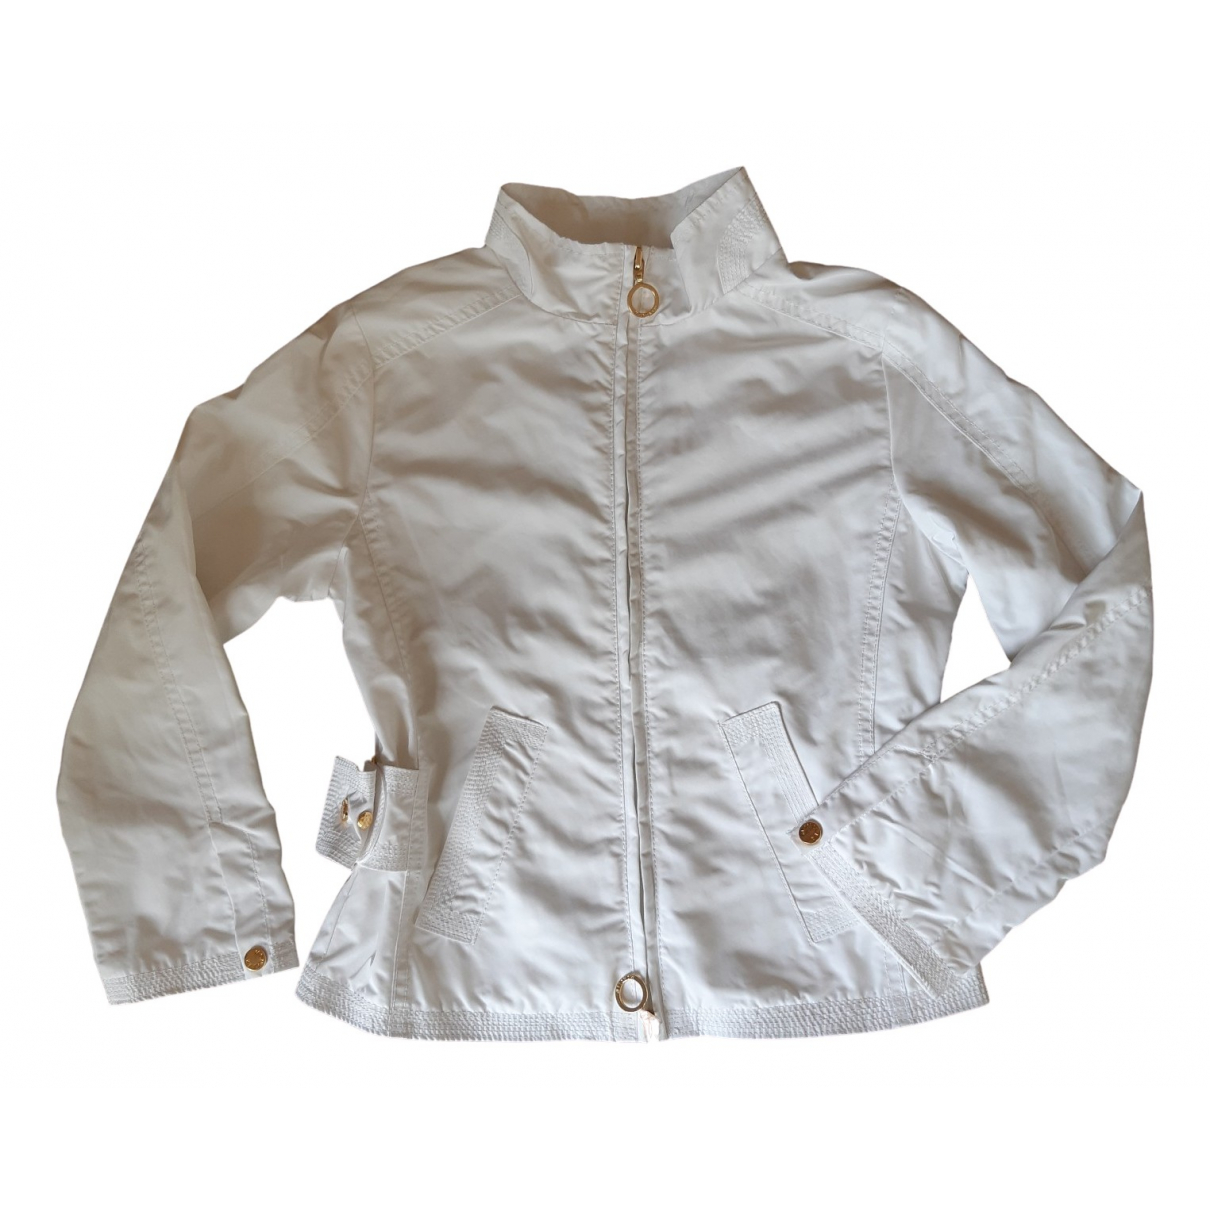 Moncler \N Jacke, Maentel in  Weiss Polyester